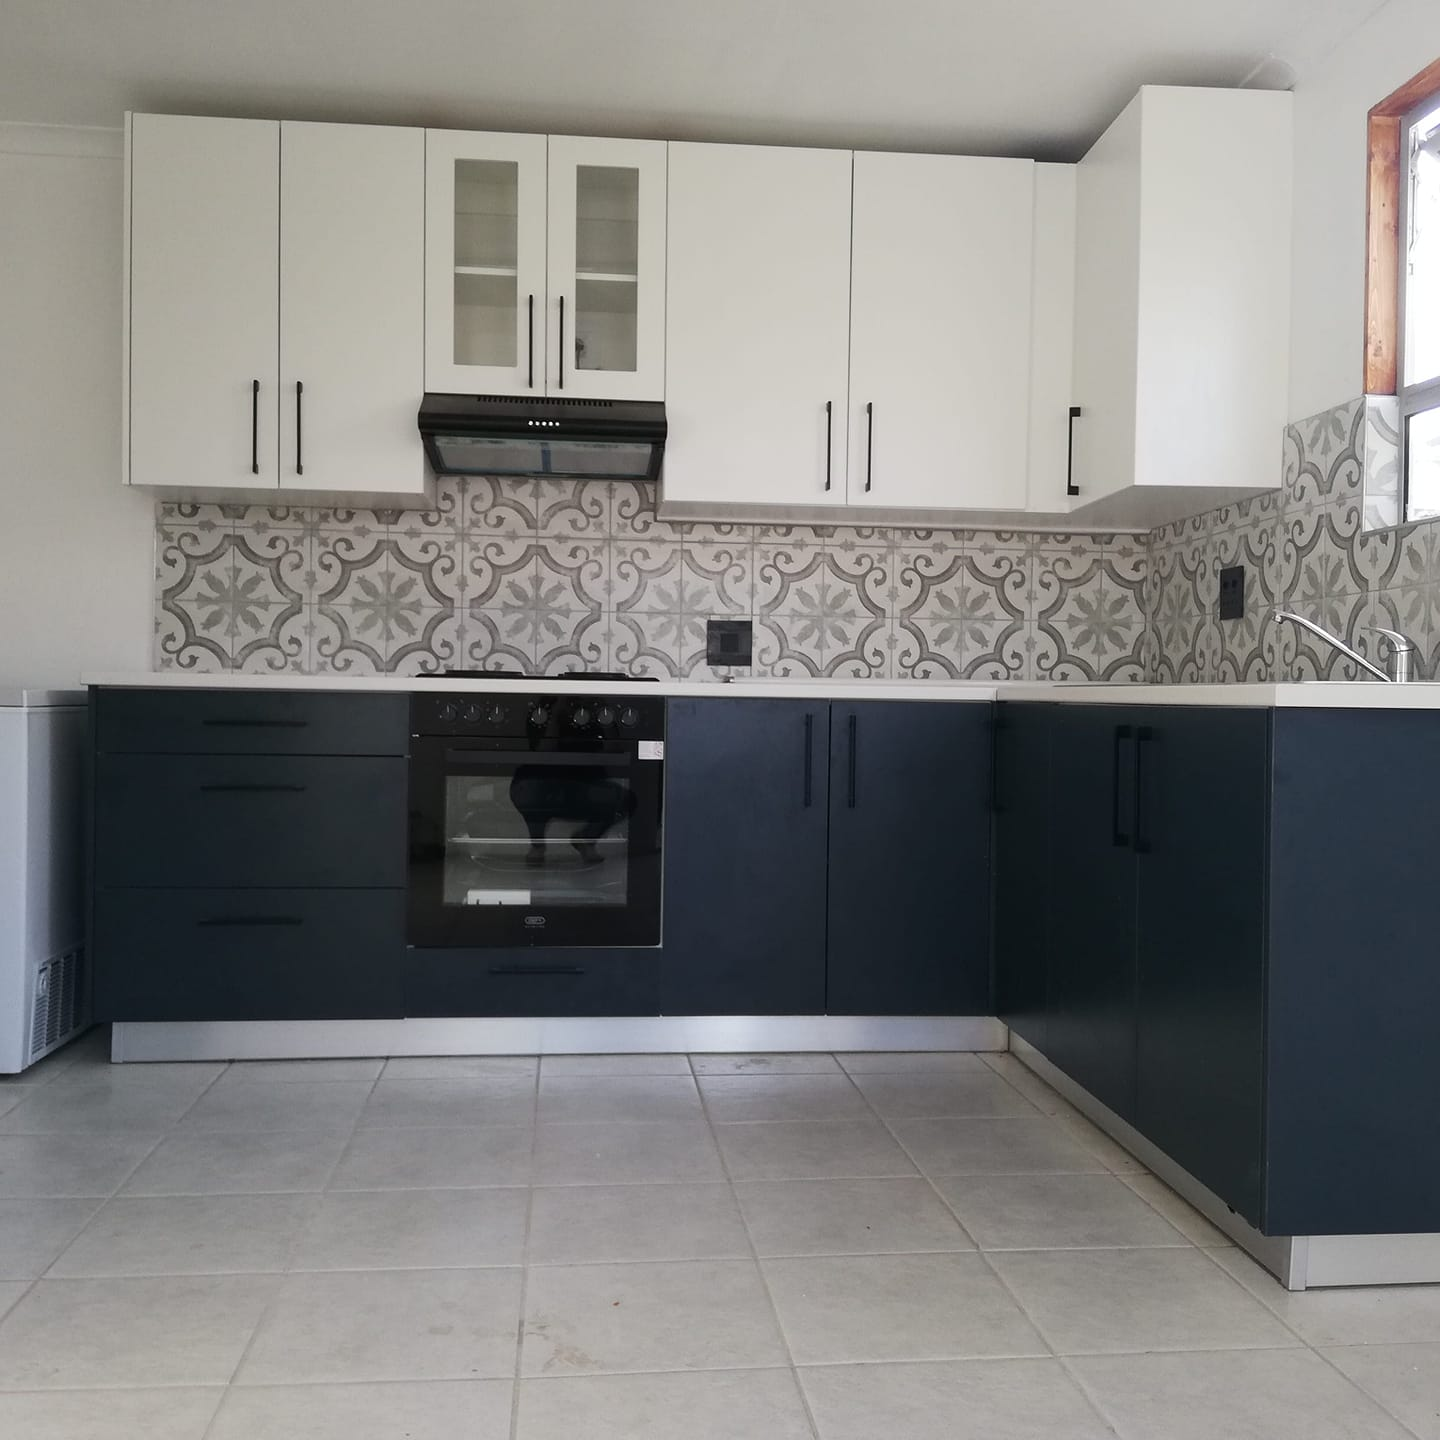 Modern kitchen renovated by AllPro Construction